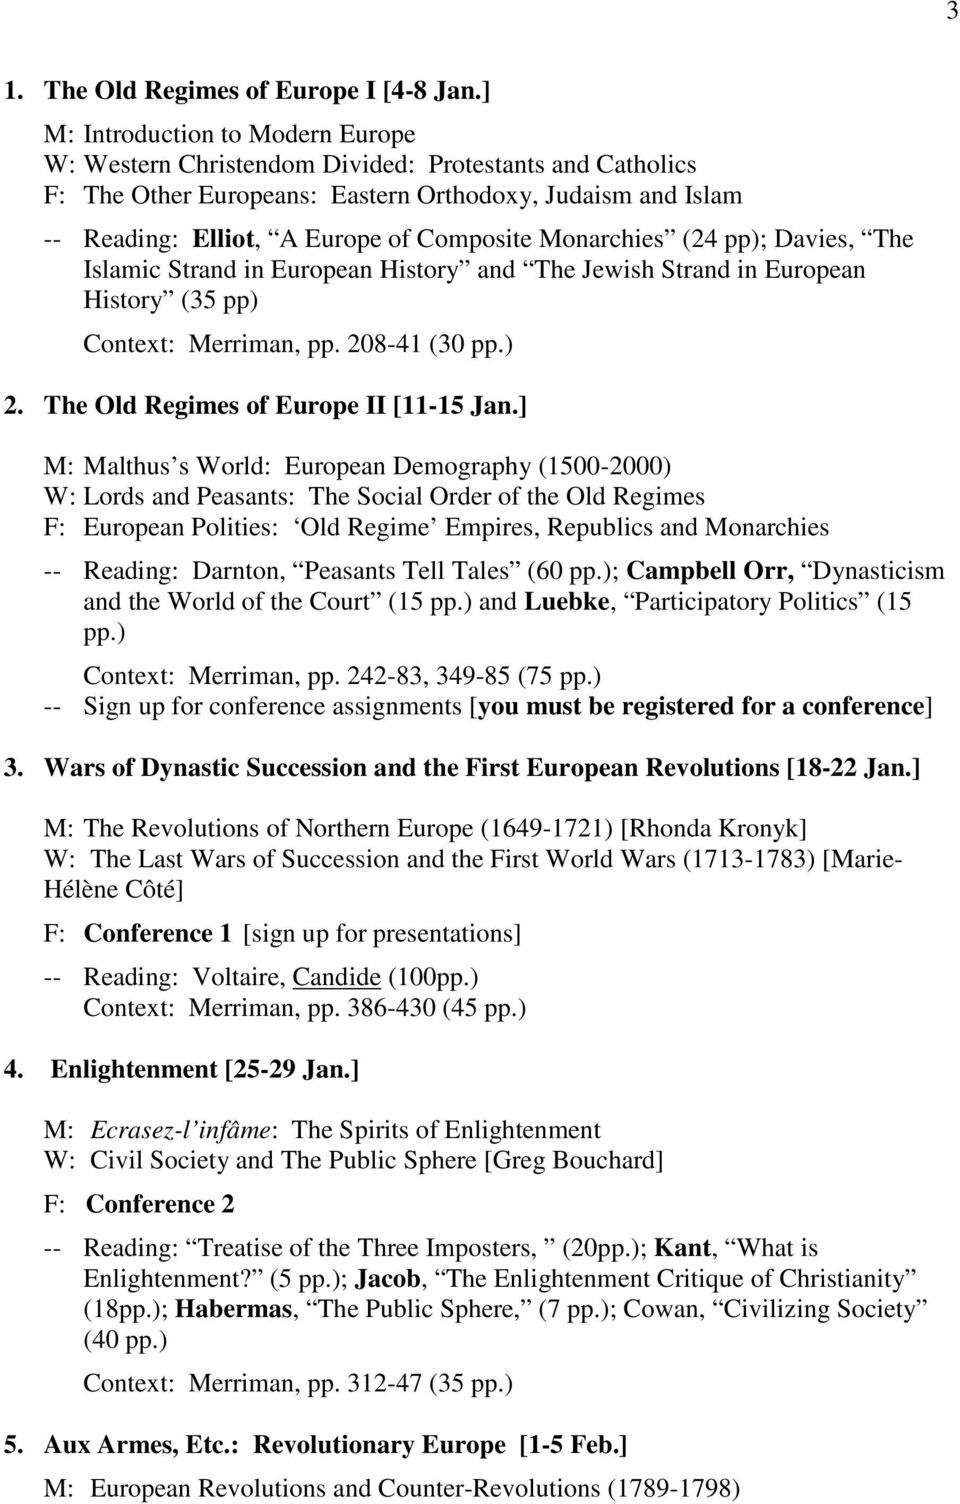 Hist 215 modern european history pdf monarchies 24 pp davies the islamic strand in european history and the fandeluxe Choice Image